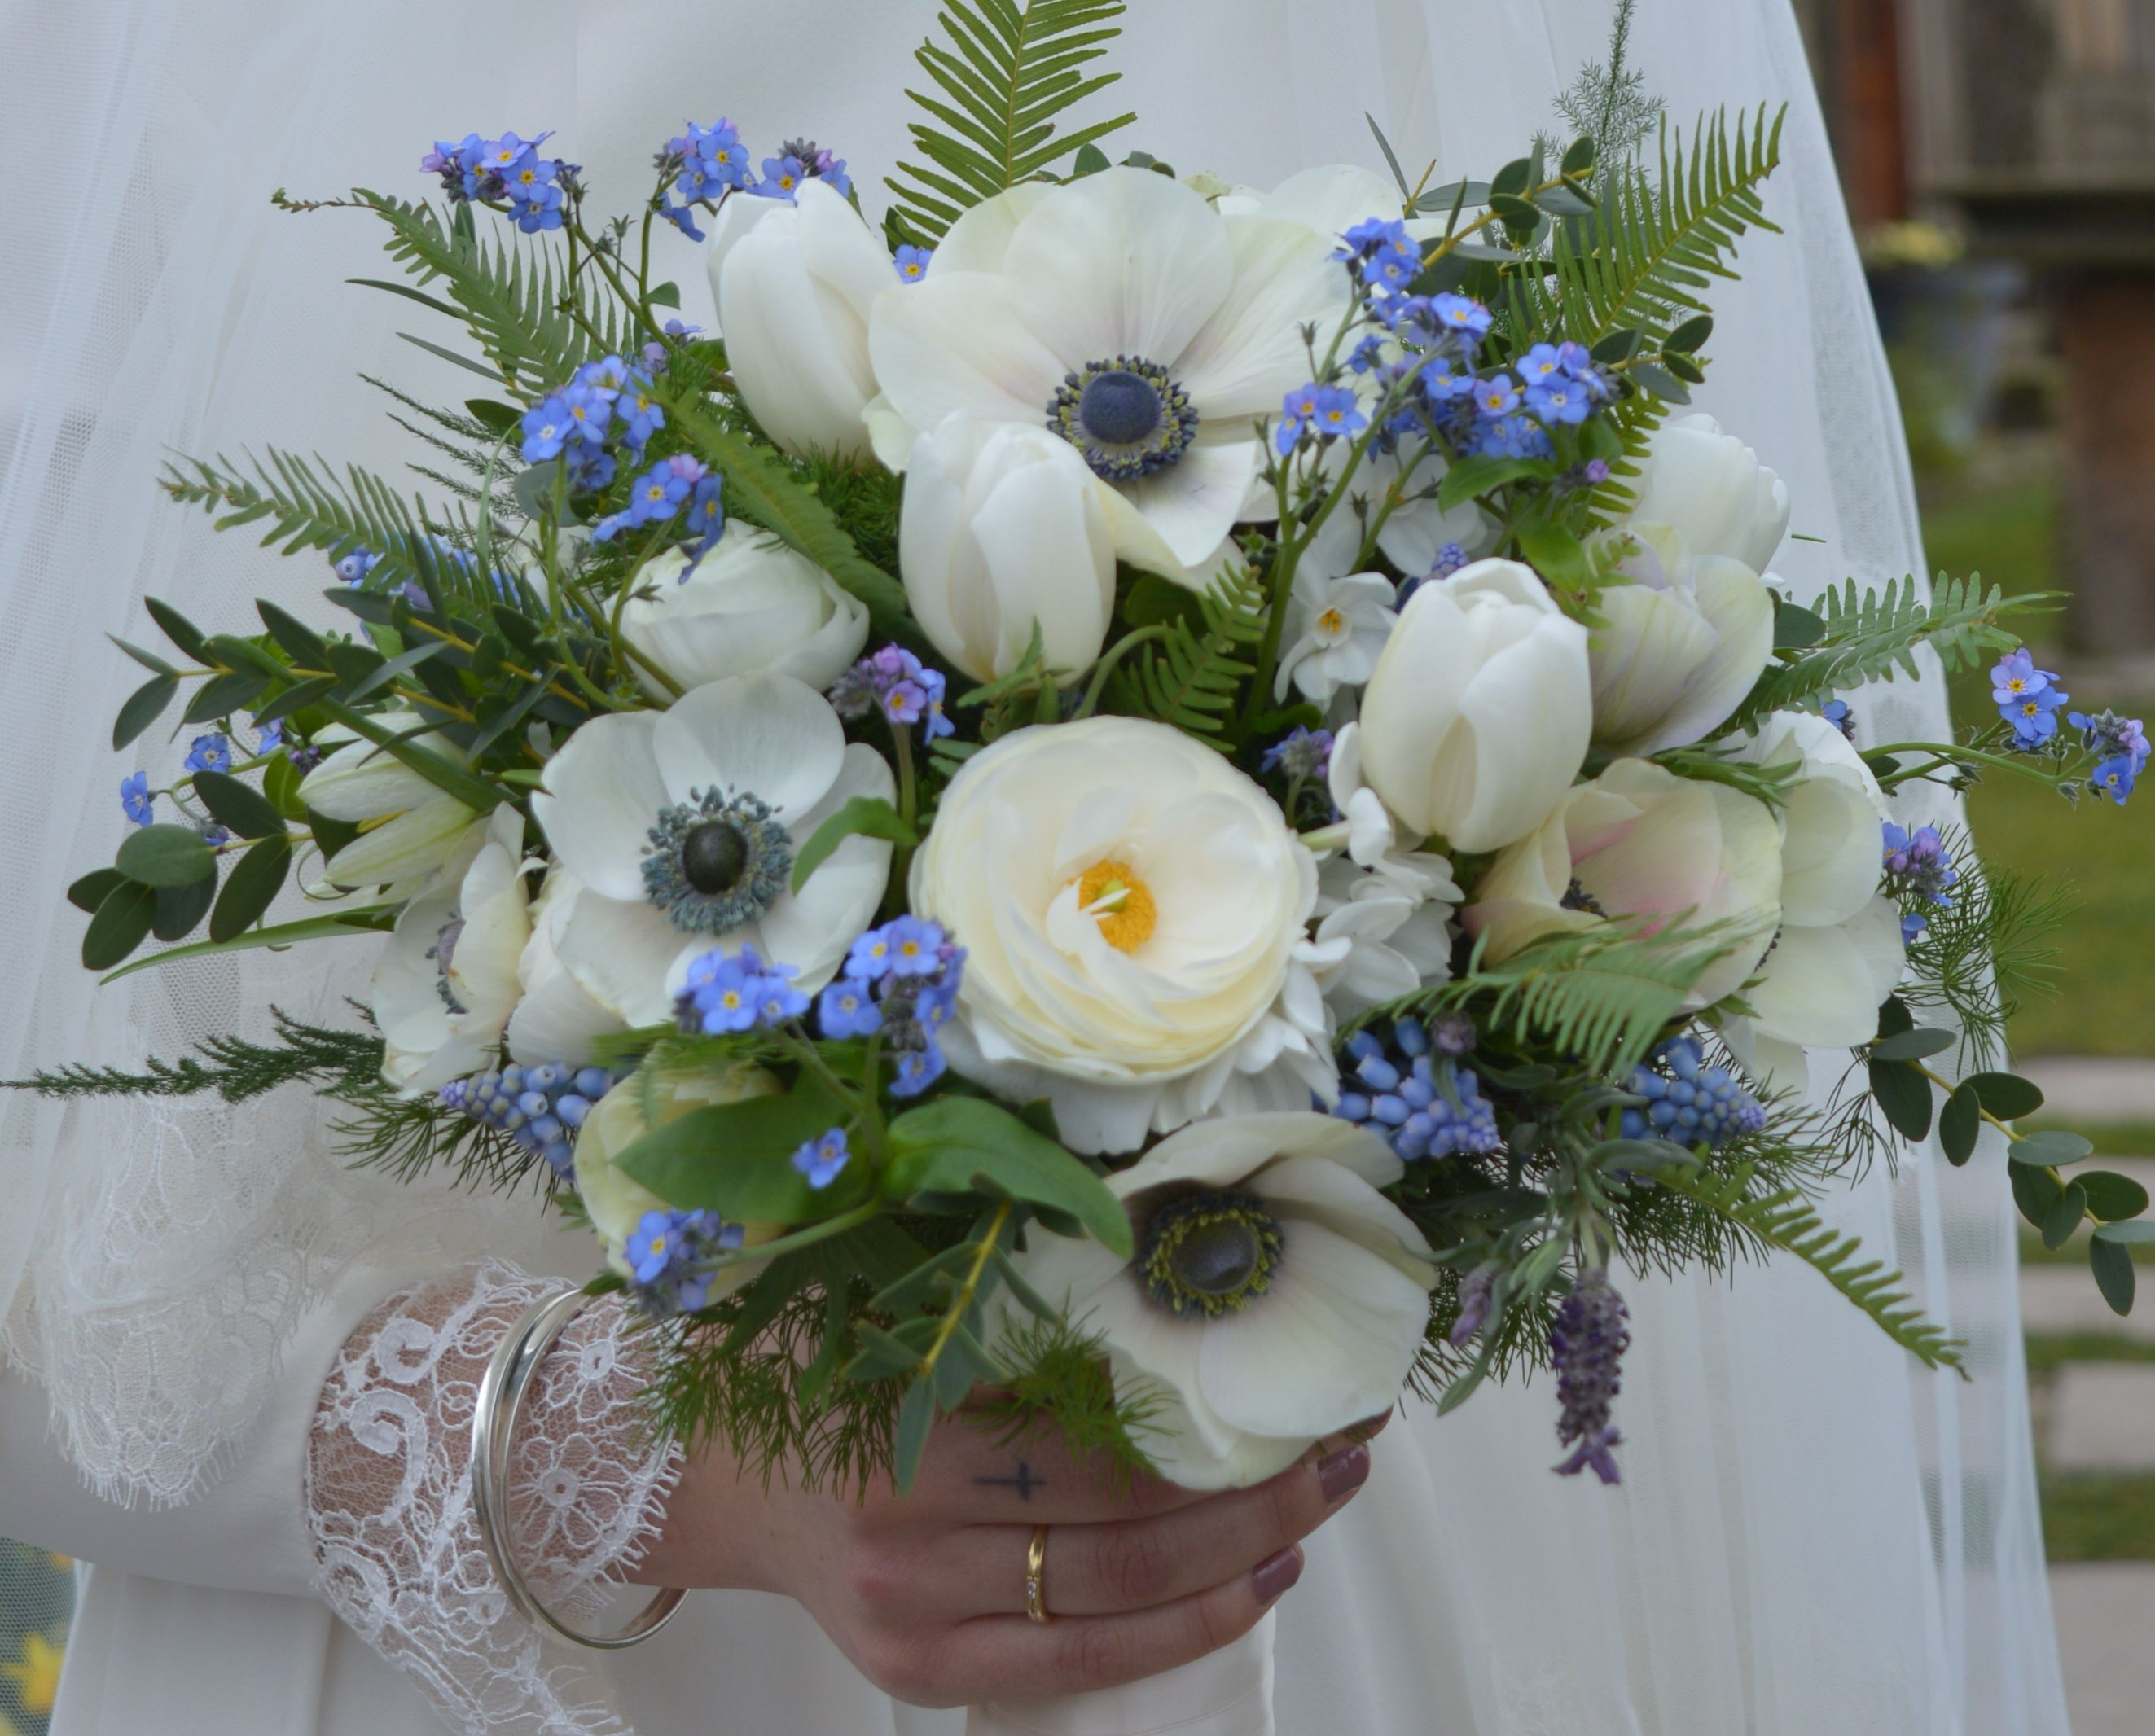 Spring Flower Bridal Bouquet Using British Tulips Anemones Blue Muscari Forget Me Nots Whi Wild Wedding Bouquet Cheap Wedding Flowers Ivory Wedding Flowers